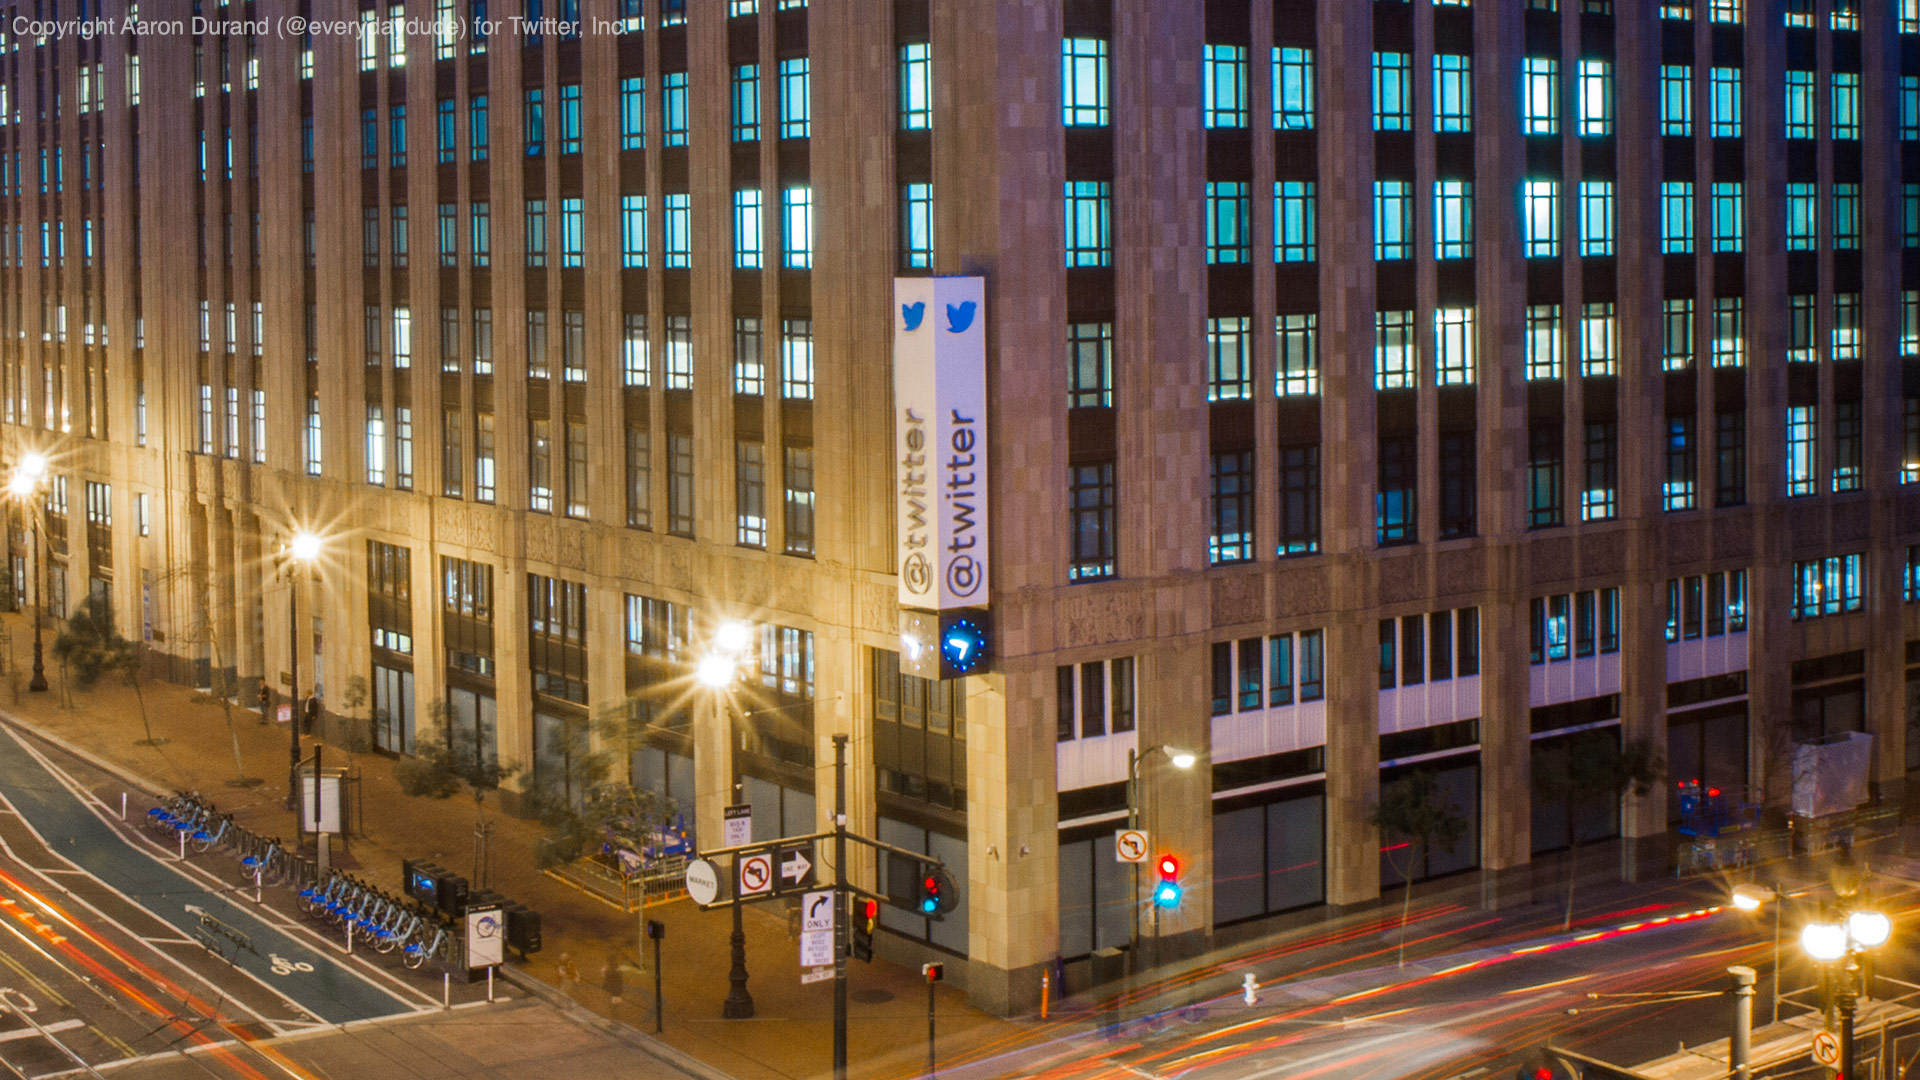 Twitter expands political ad limitations: Latest update aimed at state-controlled news media